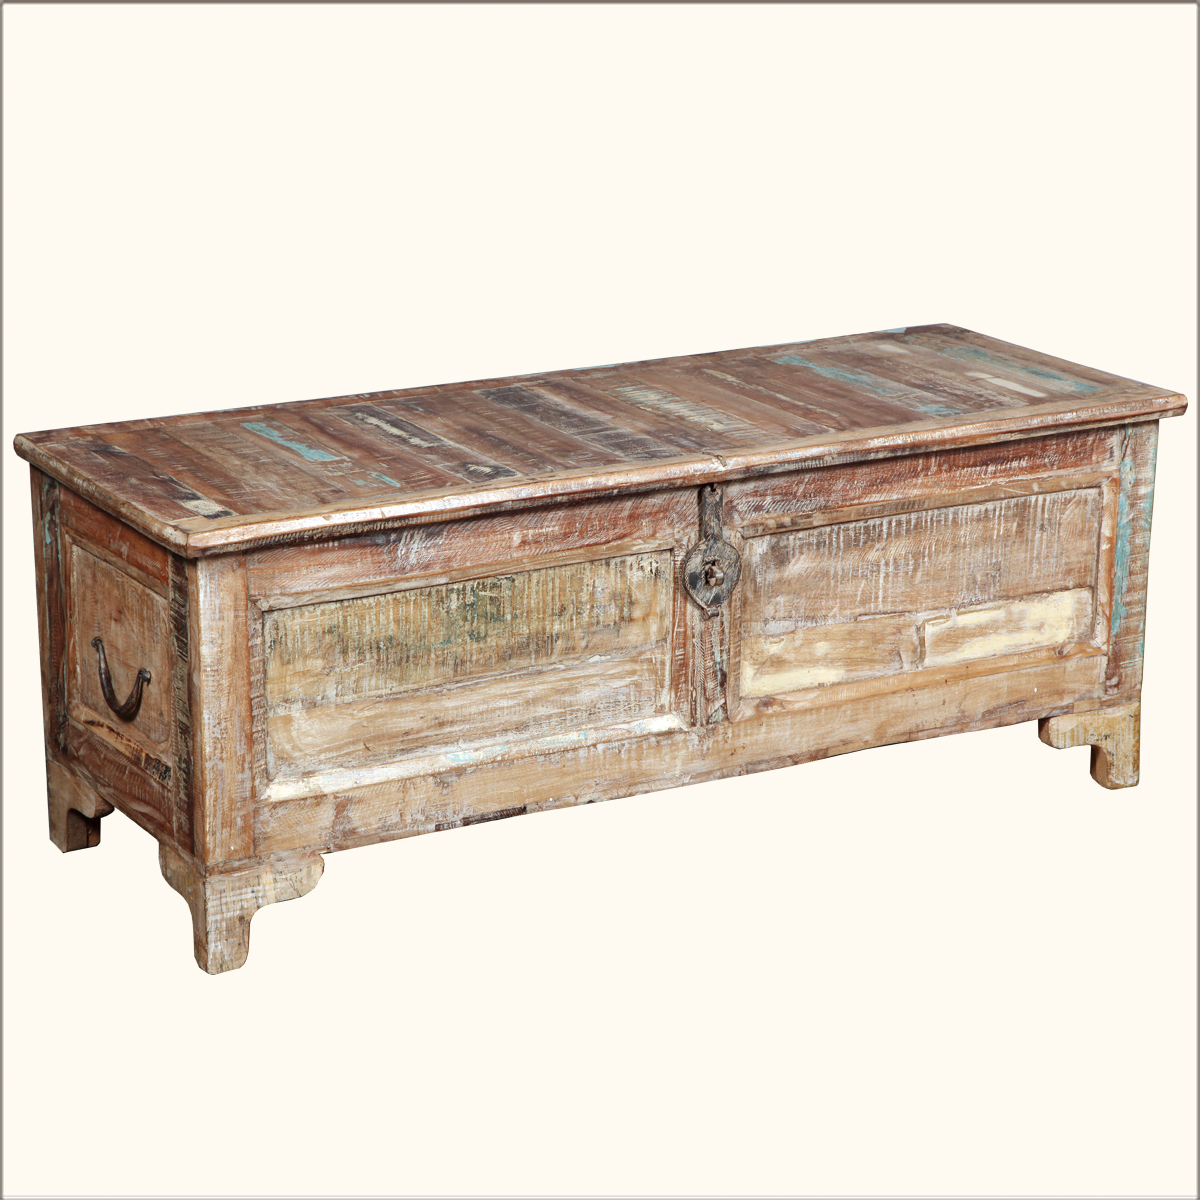 rustic reclaimed wood storage blanket box coffee table